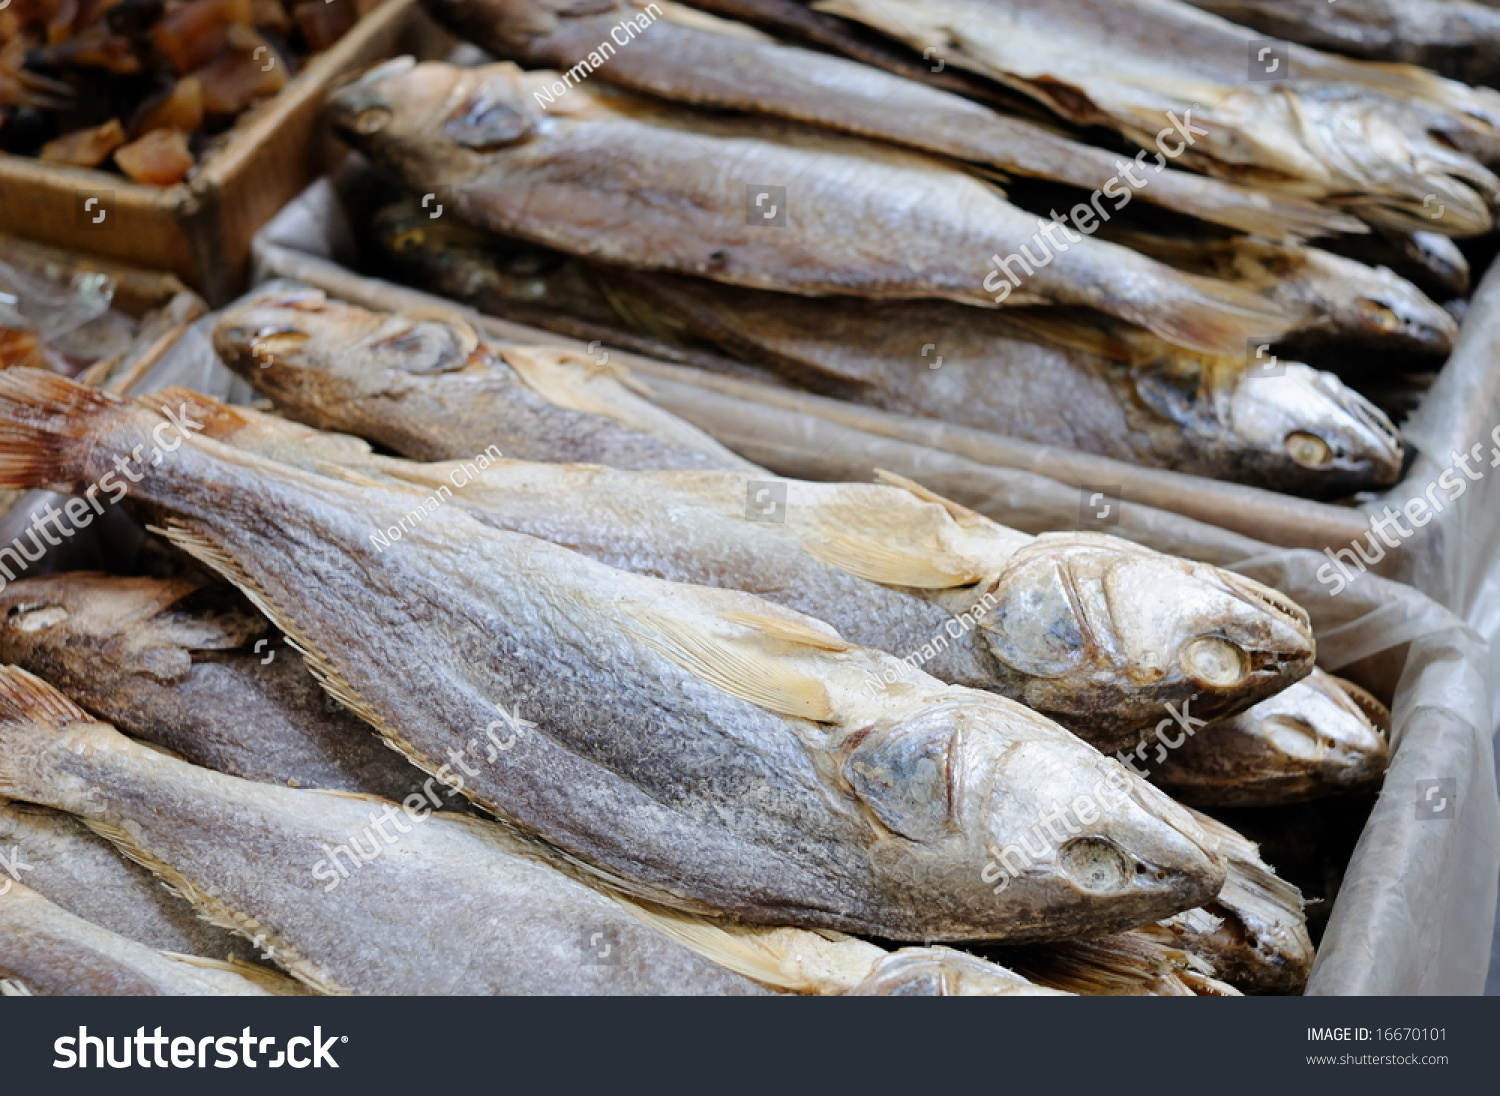 Image result for salted fish